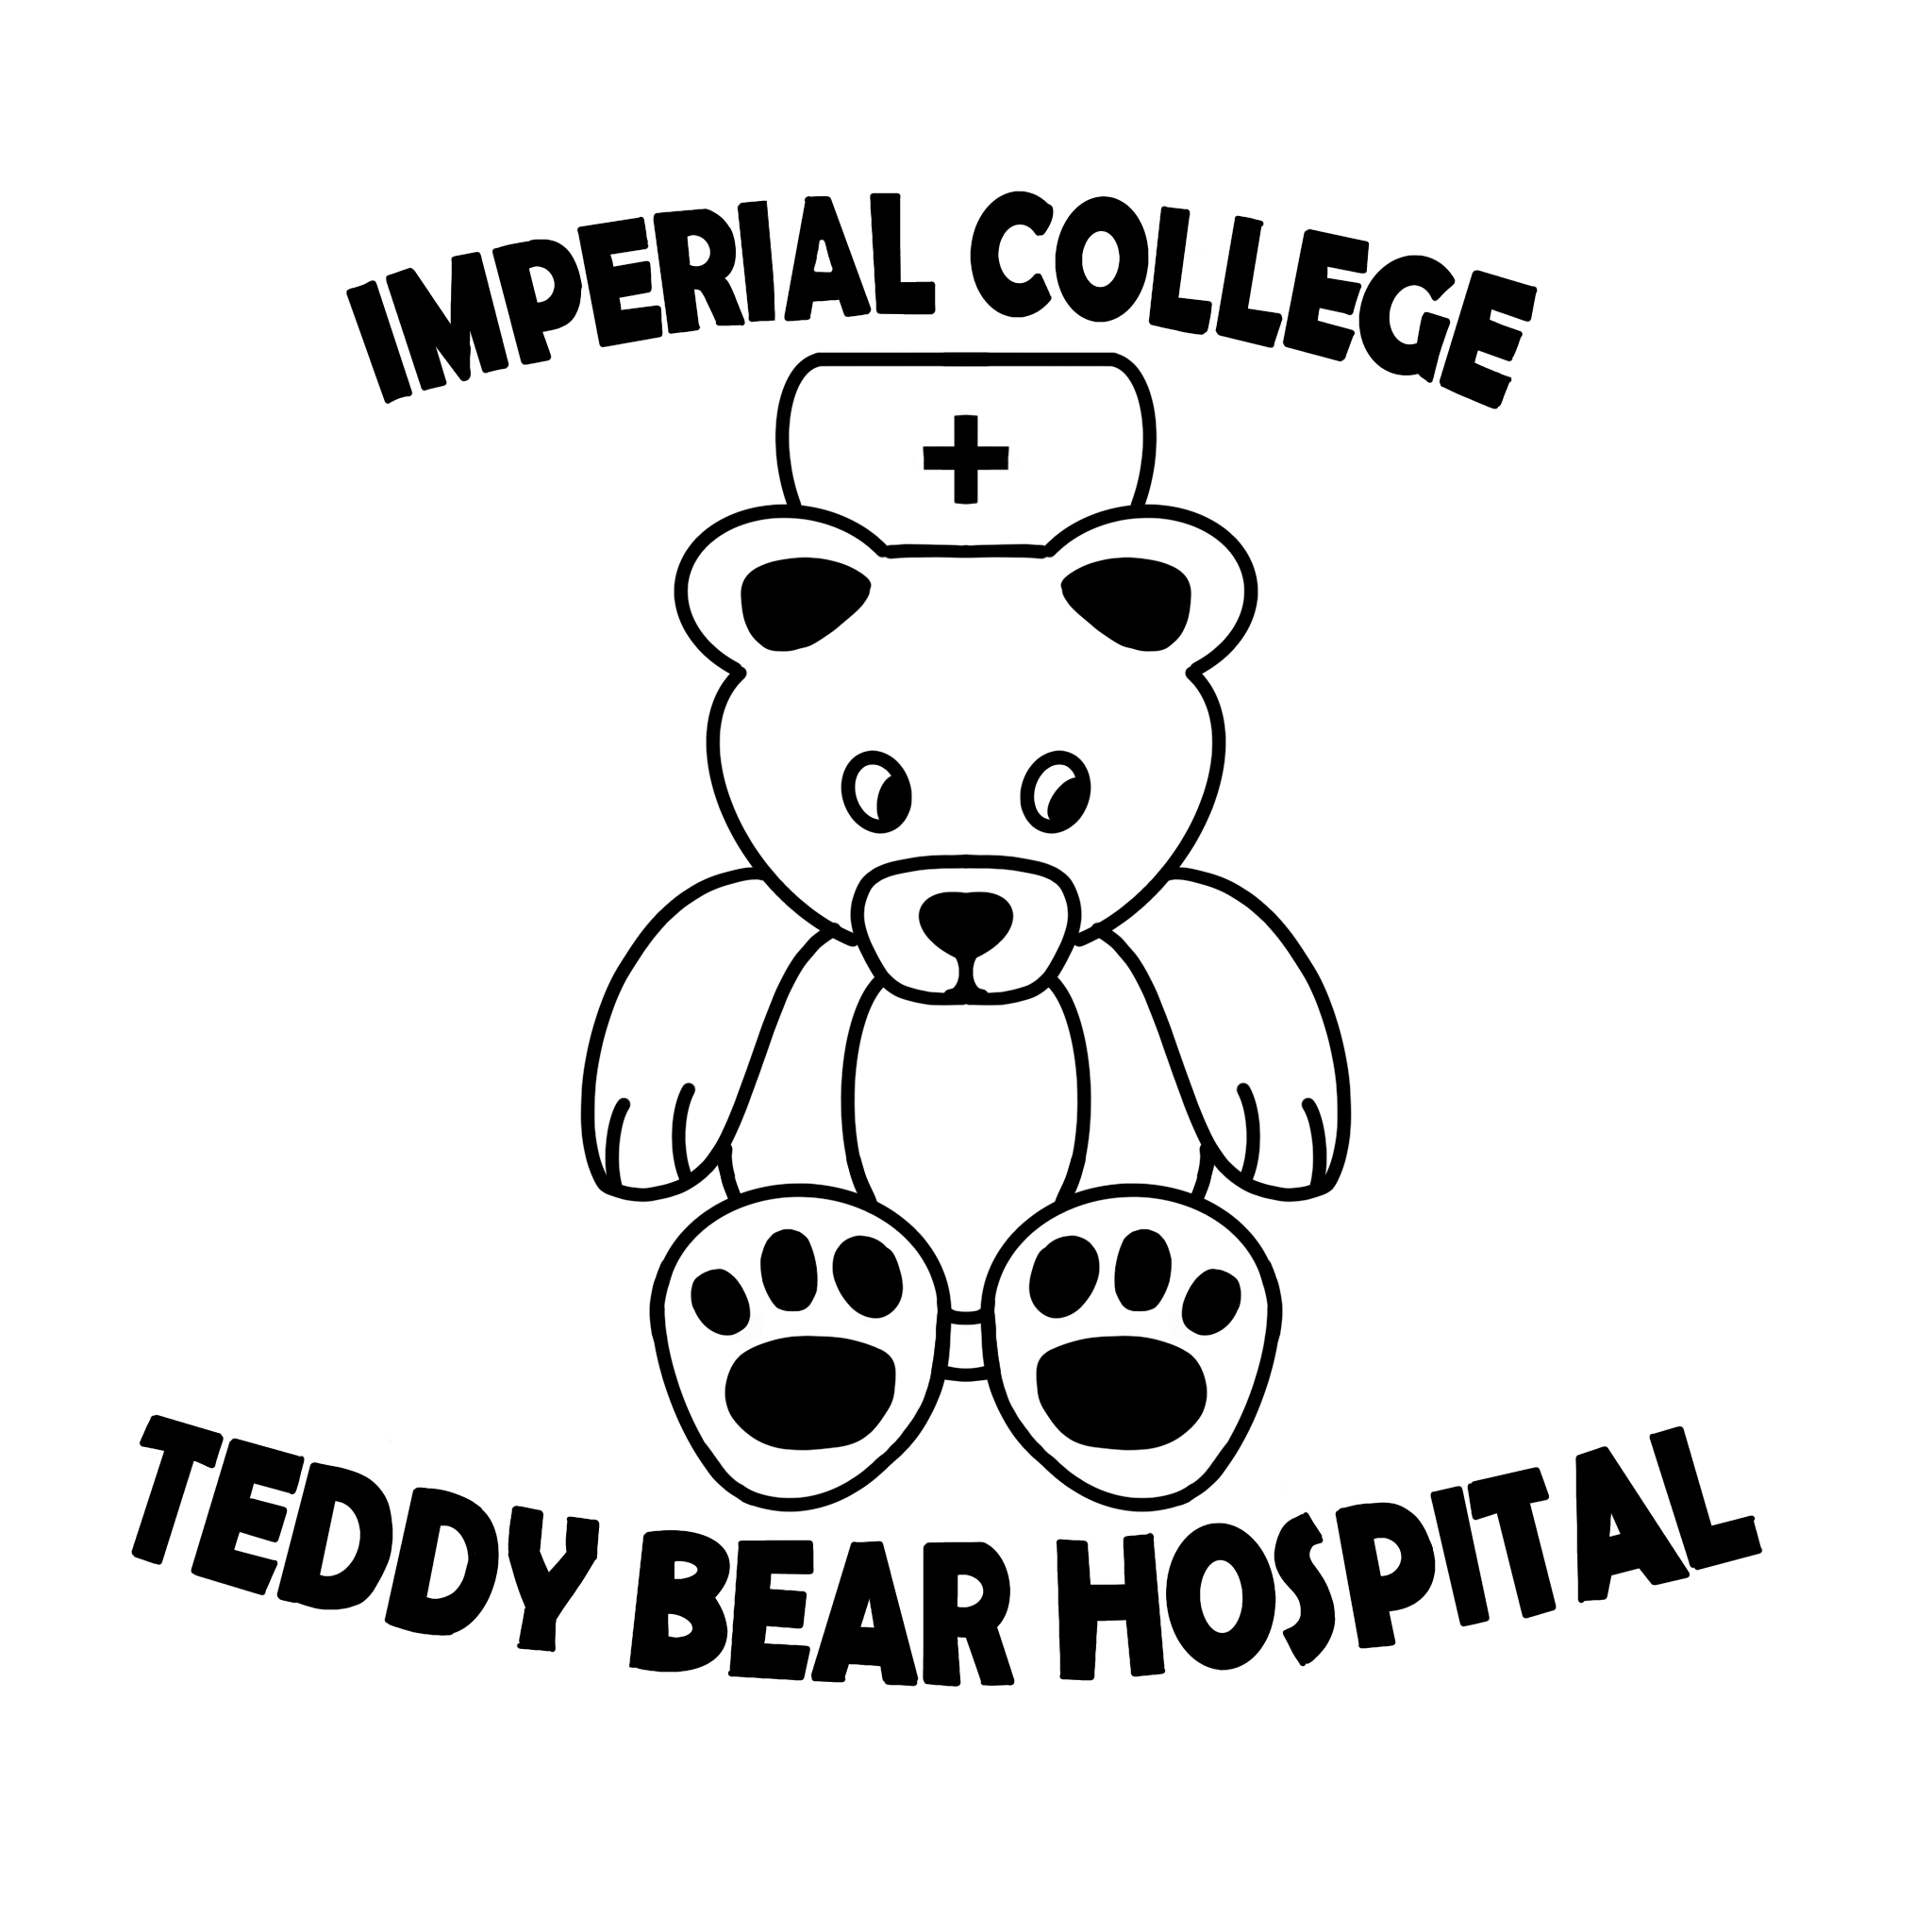 ICSM Teddy Bear Hospital